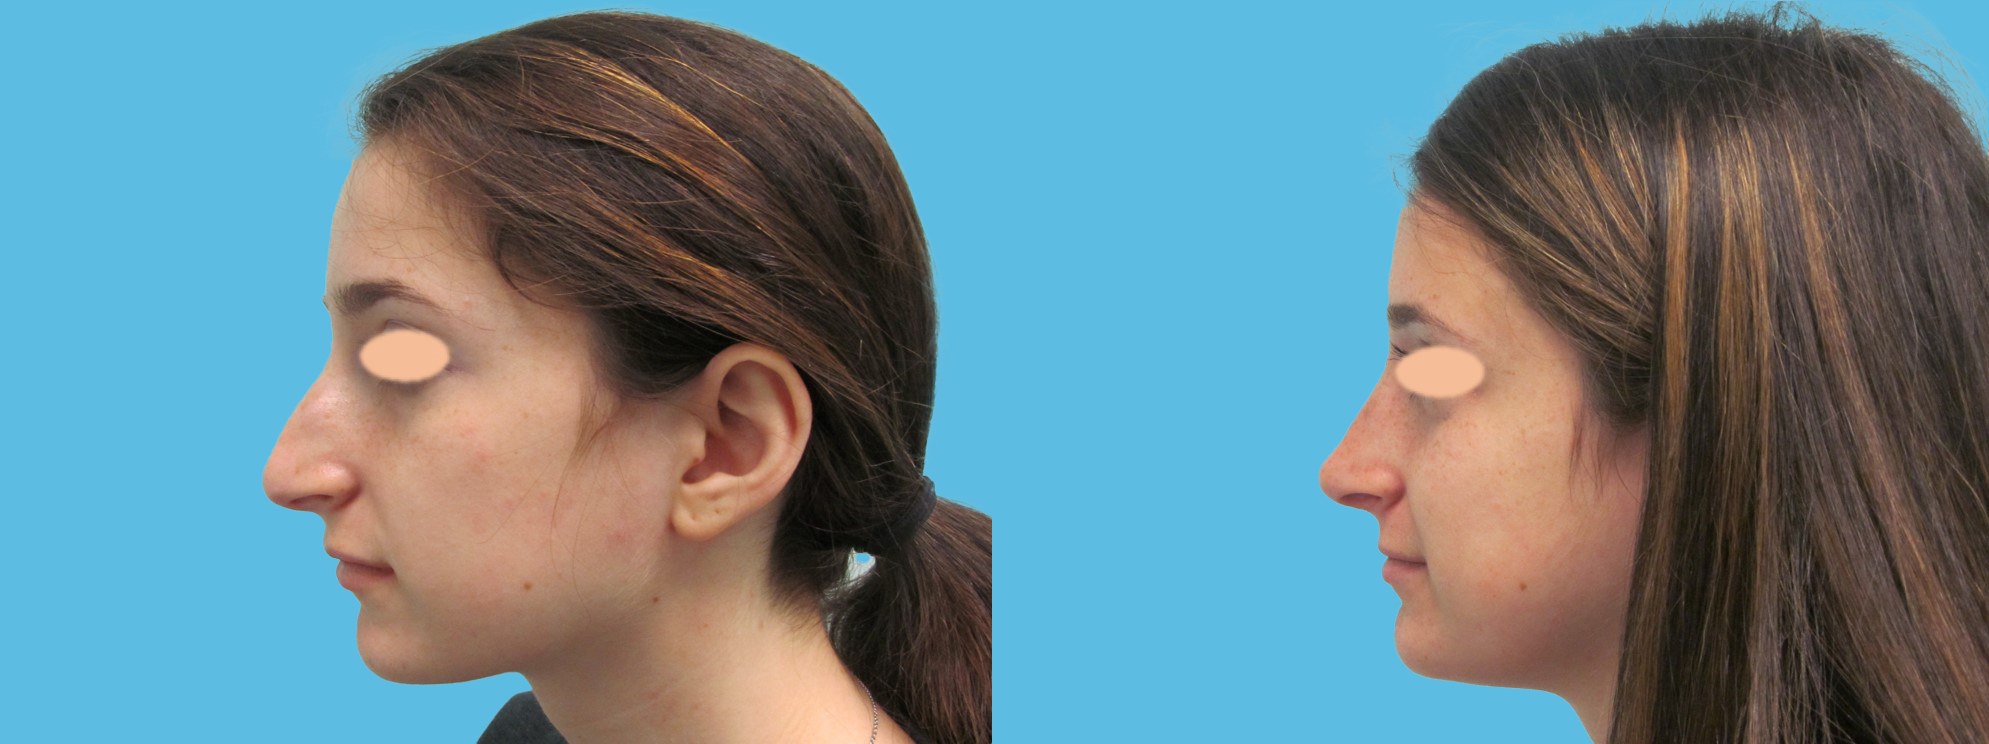 1 year rhinoplasty (convex, over-projected nose, thin skin)